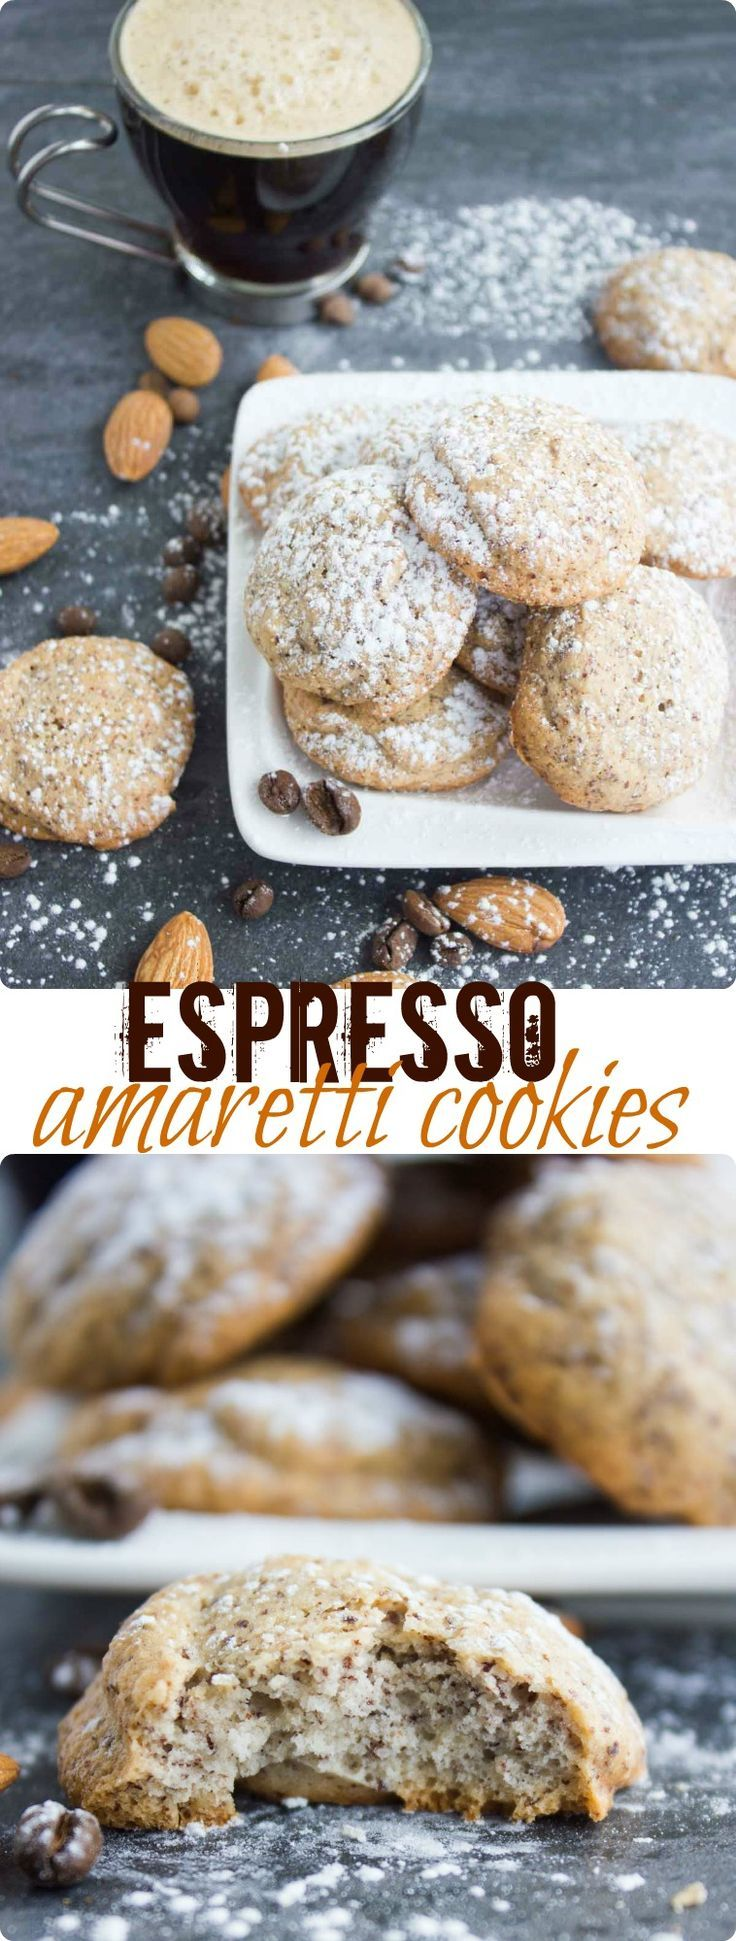 Espresso Amaretti Cookies. These are an Italian Almond DREAM made heavenly with ESPRESSO! Fat free, light as air, slightly crunchy on the outside, soft and airy on the inside--absolute amaretti LOVE! Get the recipe with step-by-step photos now! www.twopurplefigs.com